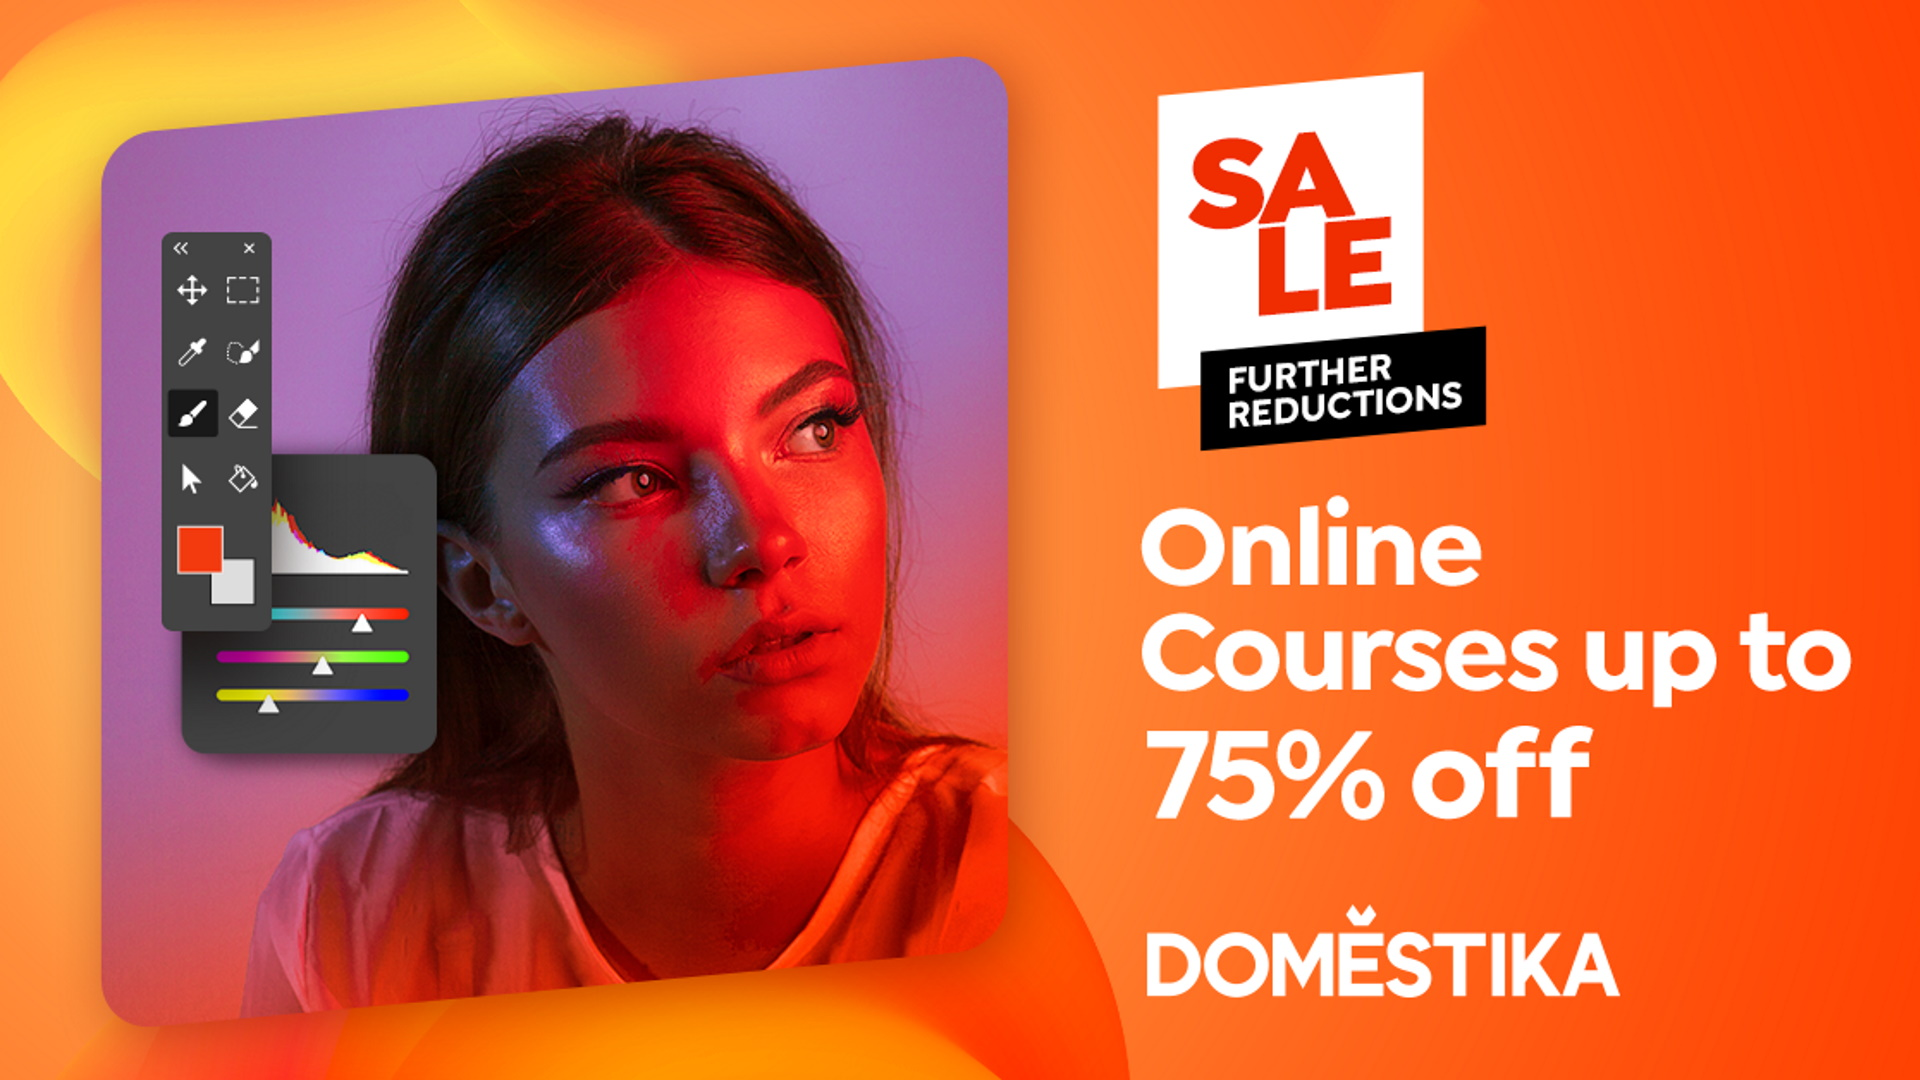 Domestika sales and discounts